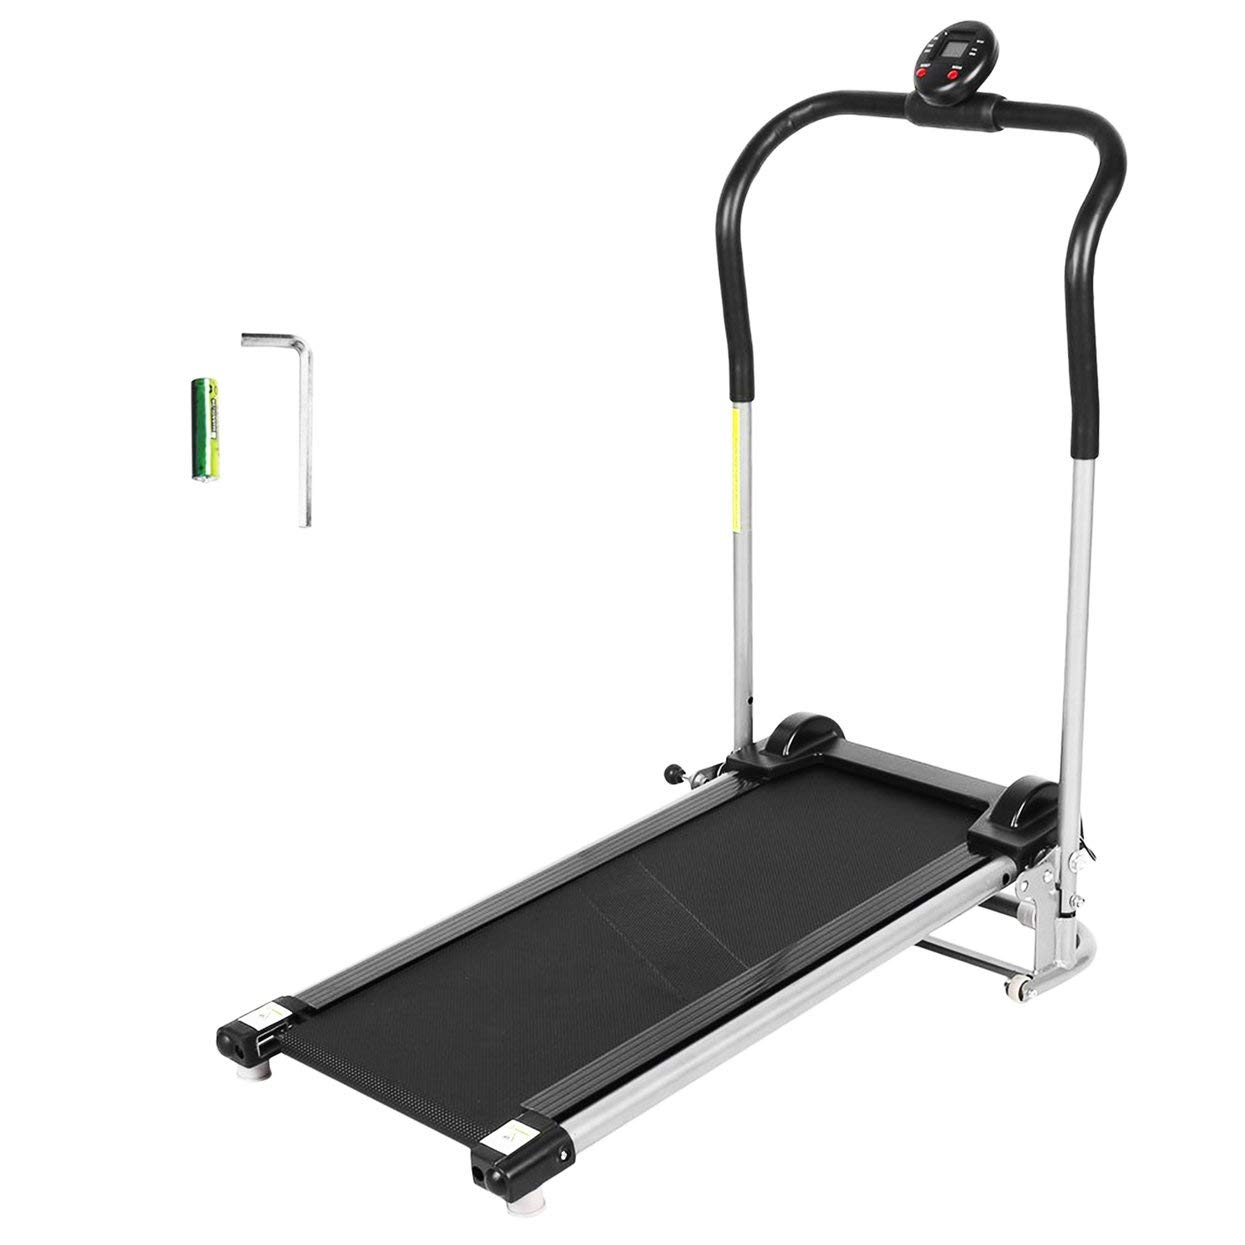 Folding Silent Free Assembly Health Fitness LED Display Treadmill Calories Time Speed Distance Running Machine HB8023